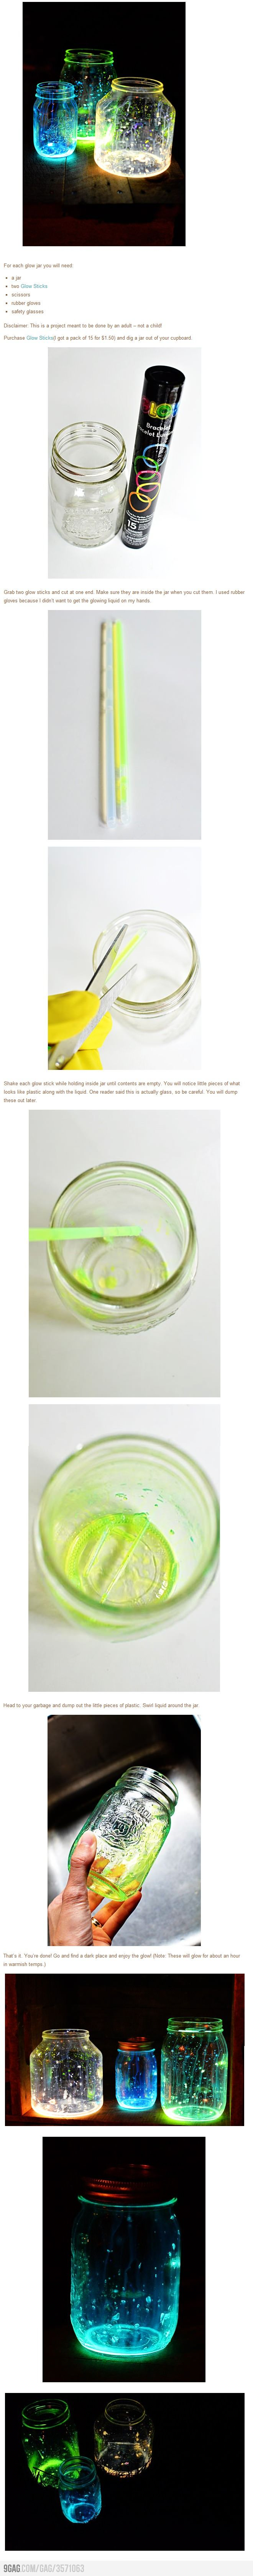 Glow Jars! Great for bon fire nights when you need a little glow for the snack/drink table.